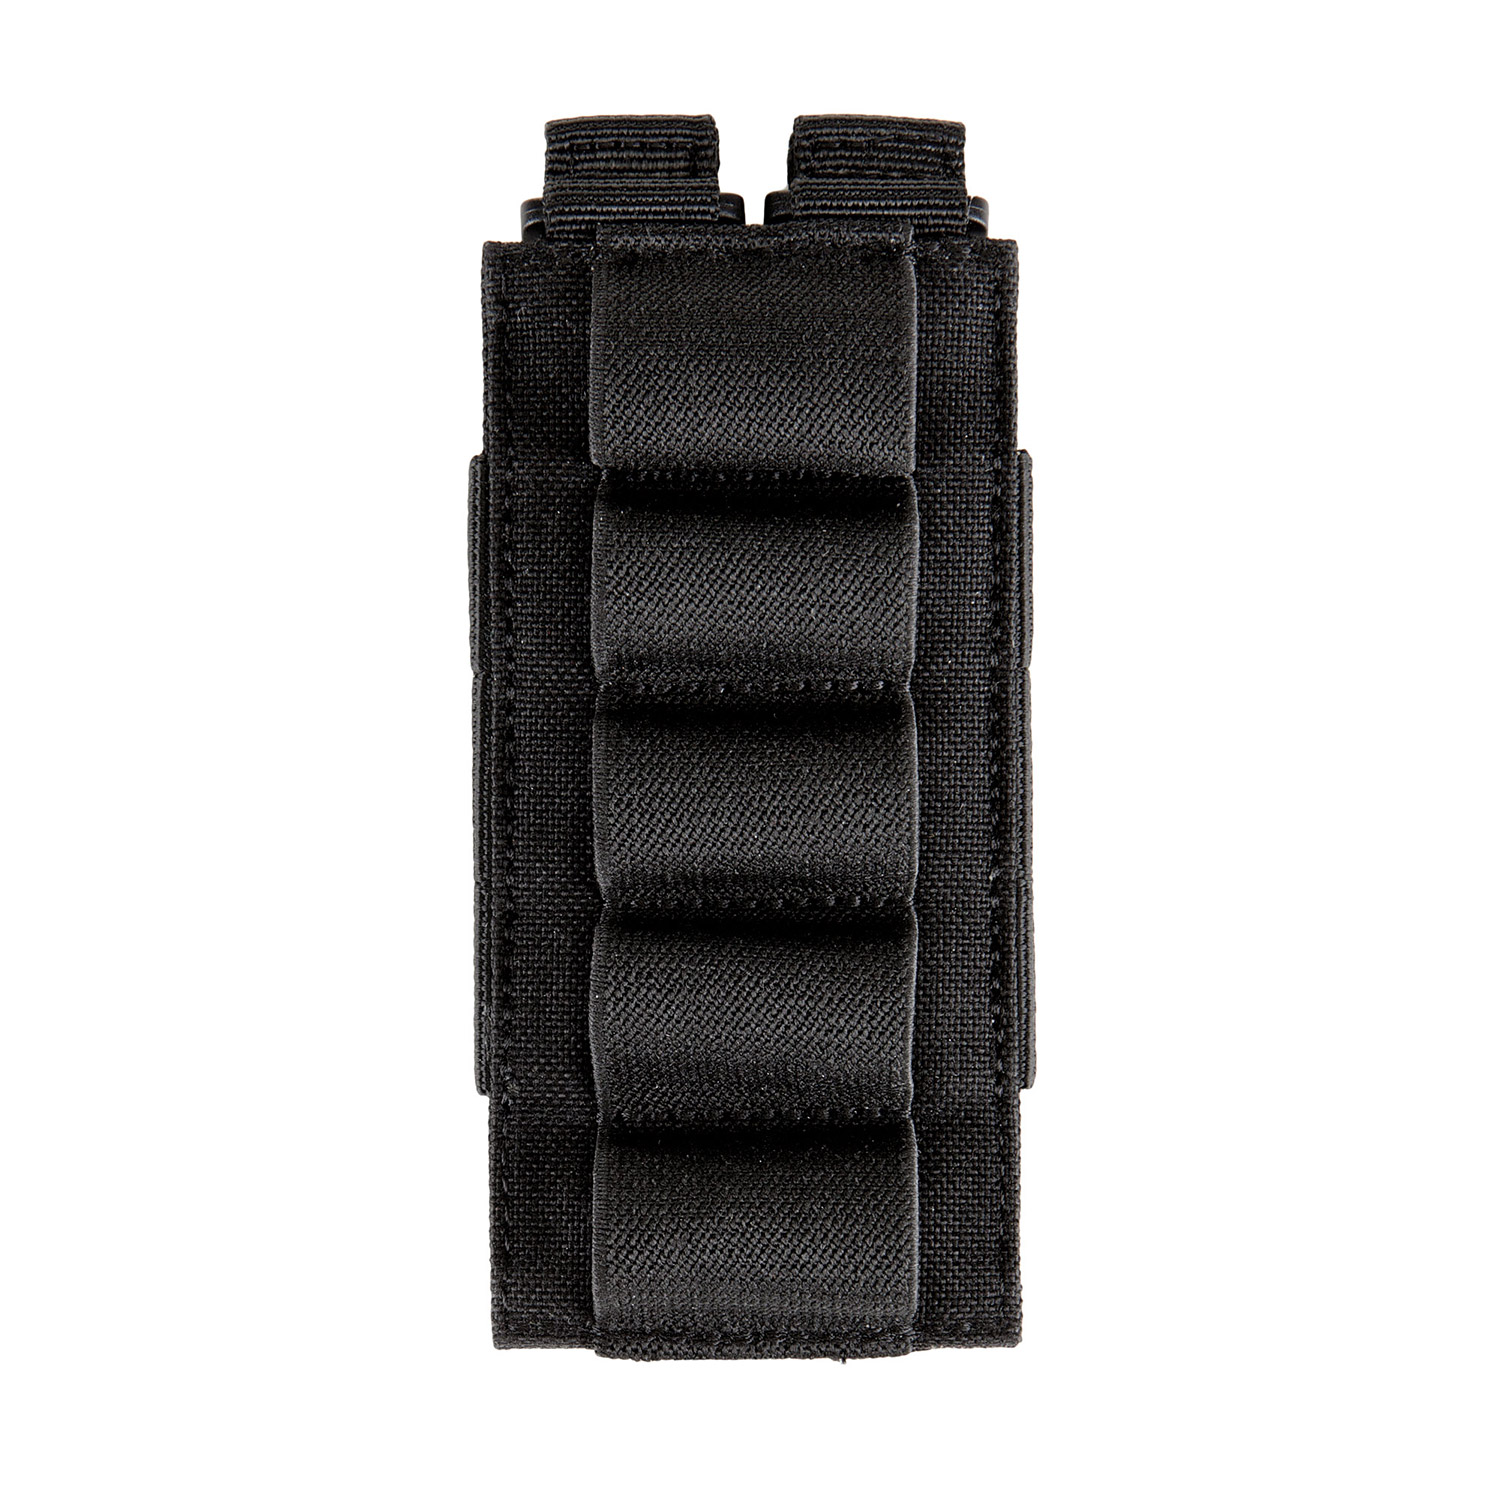 5.11 Tactical 5 RD Shotgun Bandolier